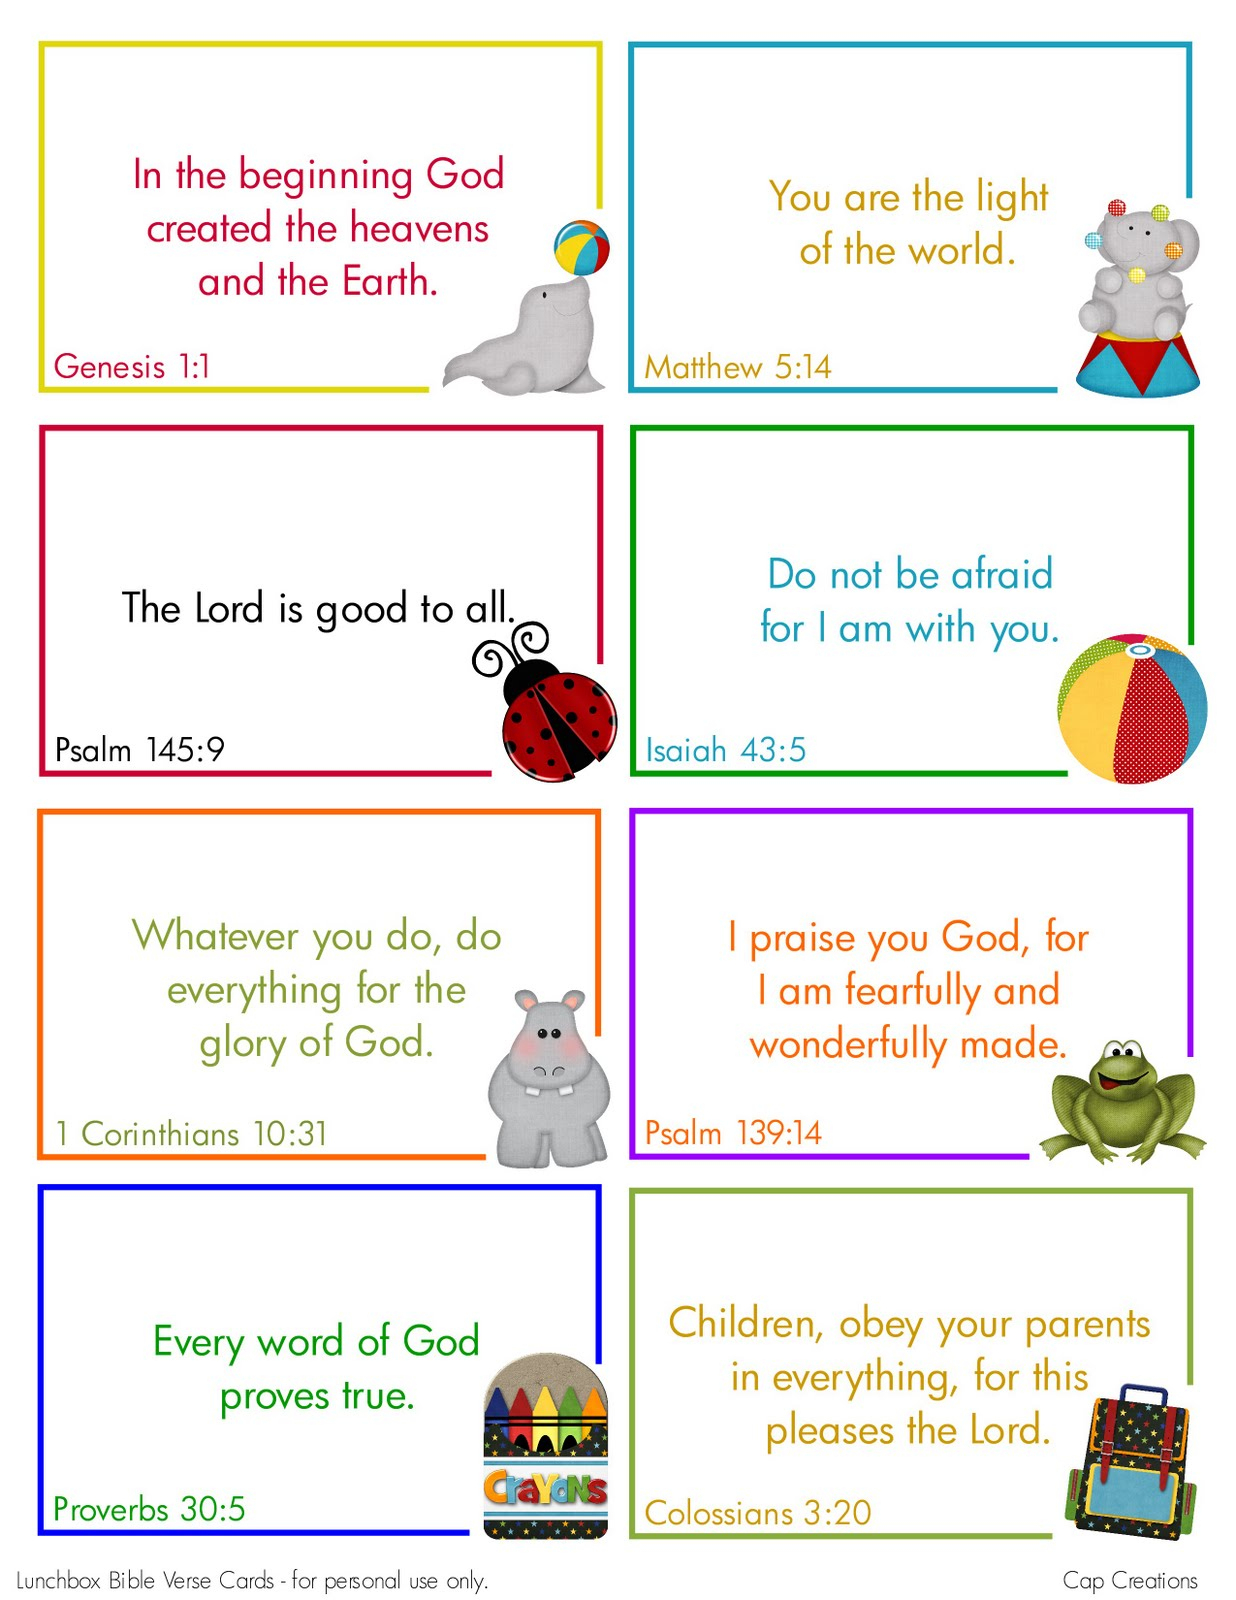 Cap Creations: Free Printable Lunchbox Bible Verse Cards - Free Printable Bible Verse Cards